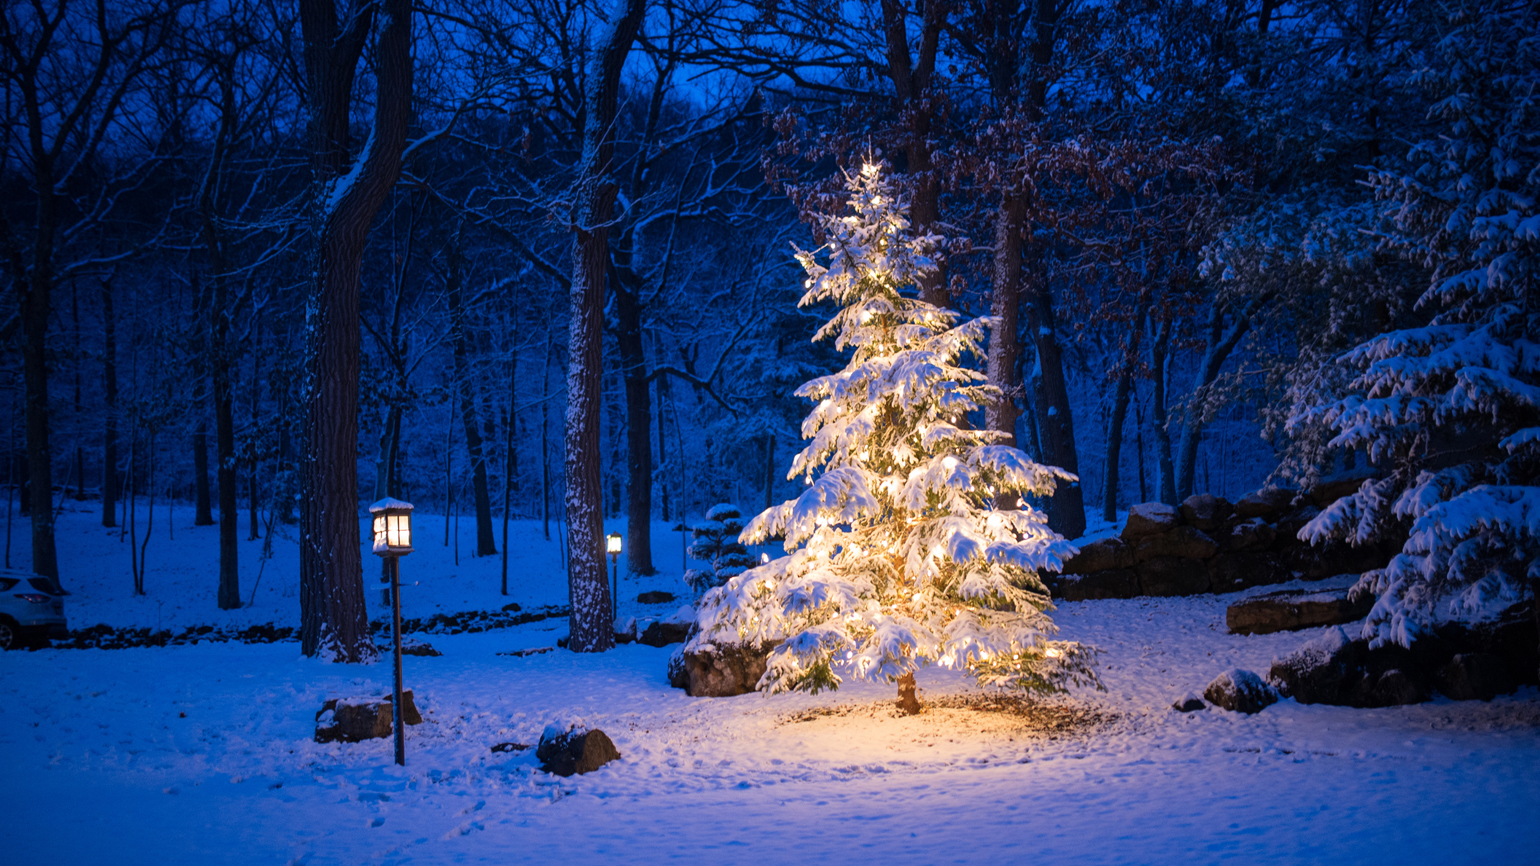 A lone Christmas tree with bright lights in the middle of a snowy forest a night.